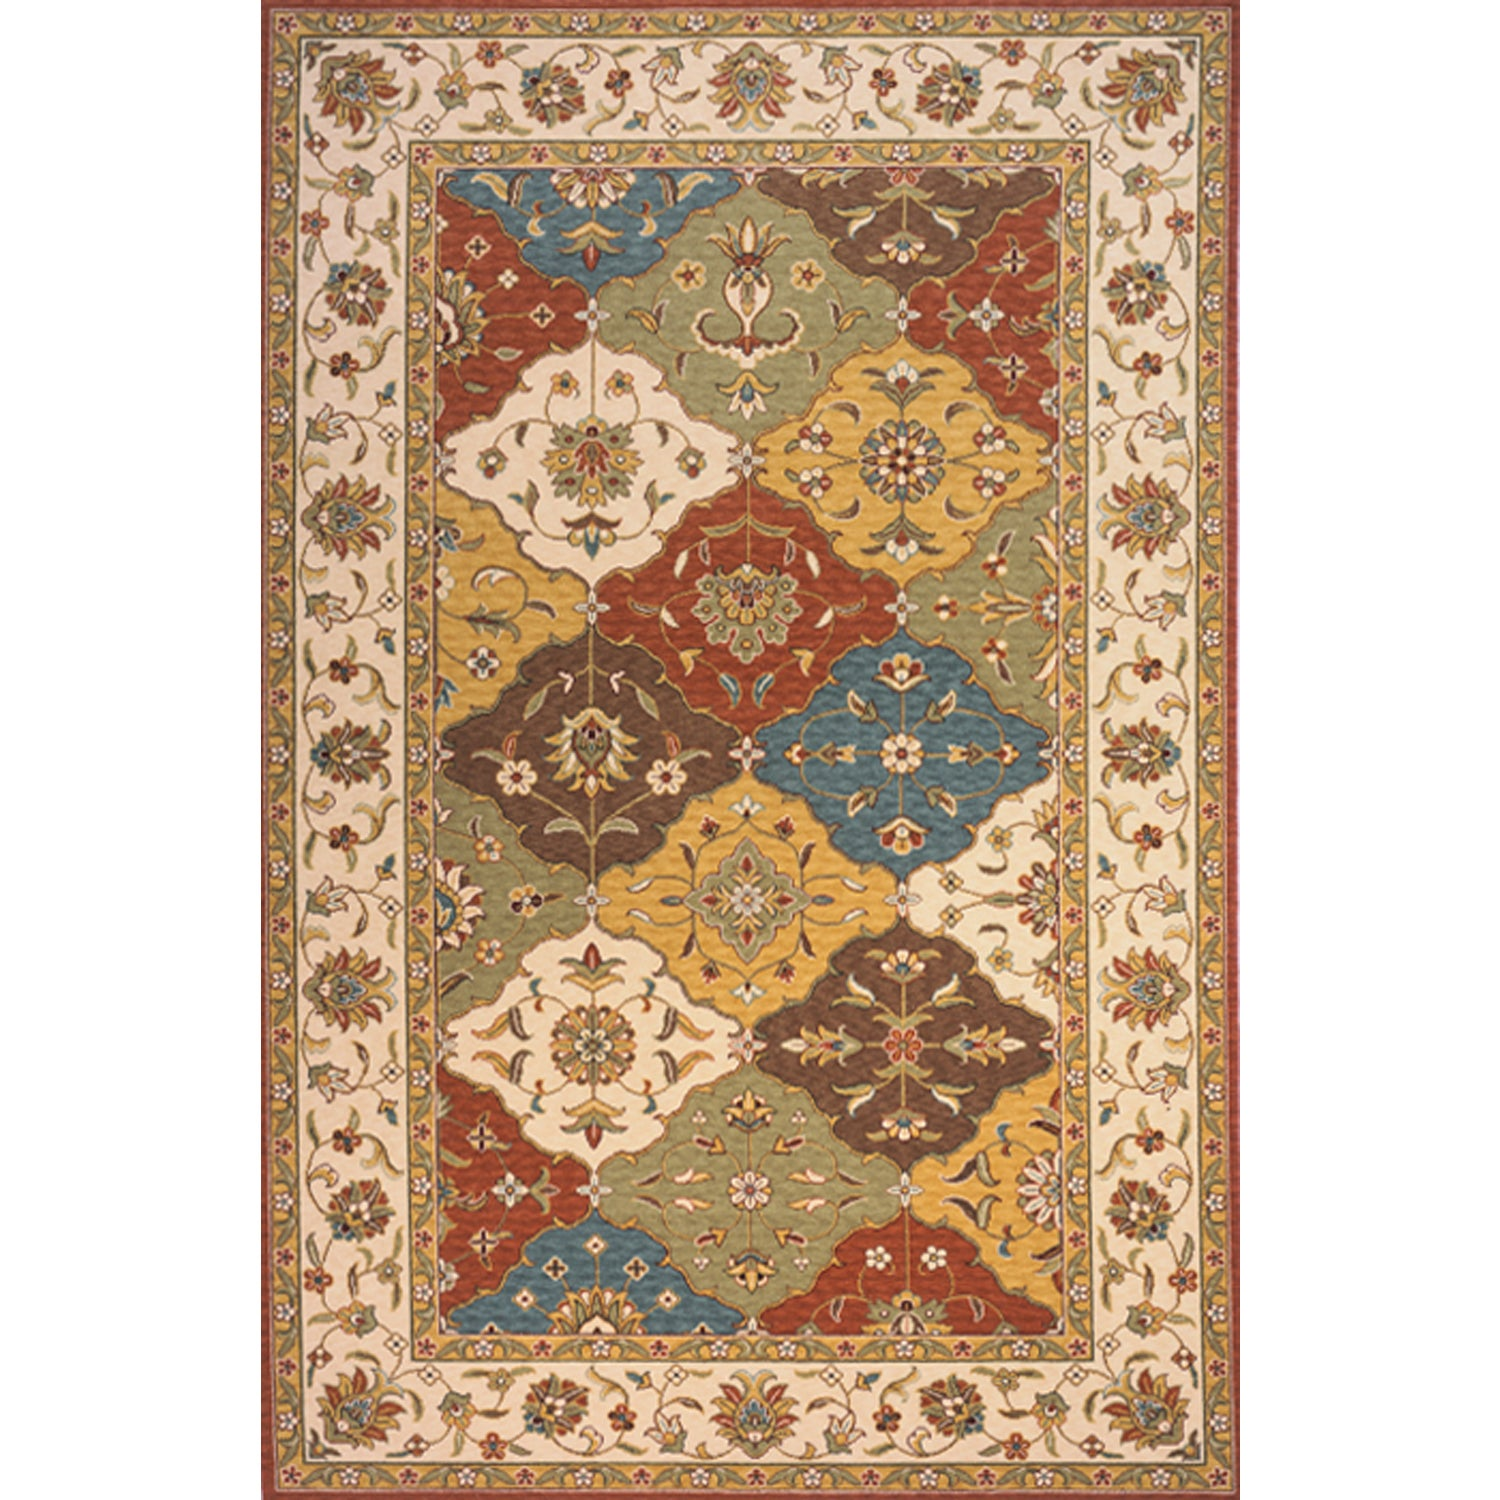 Image Is Loading Momeni Persian Garden Multicolor Nz Wool Rug 9